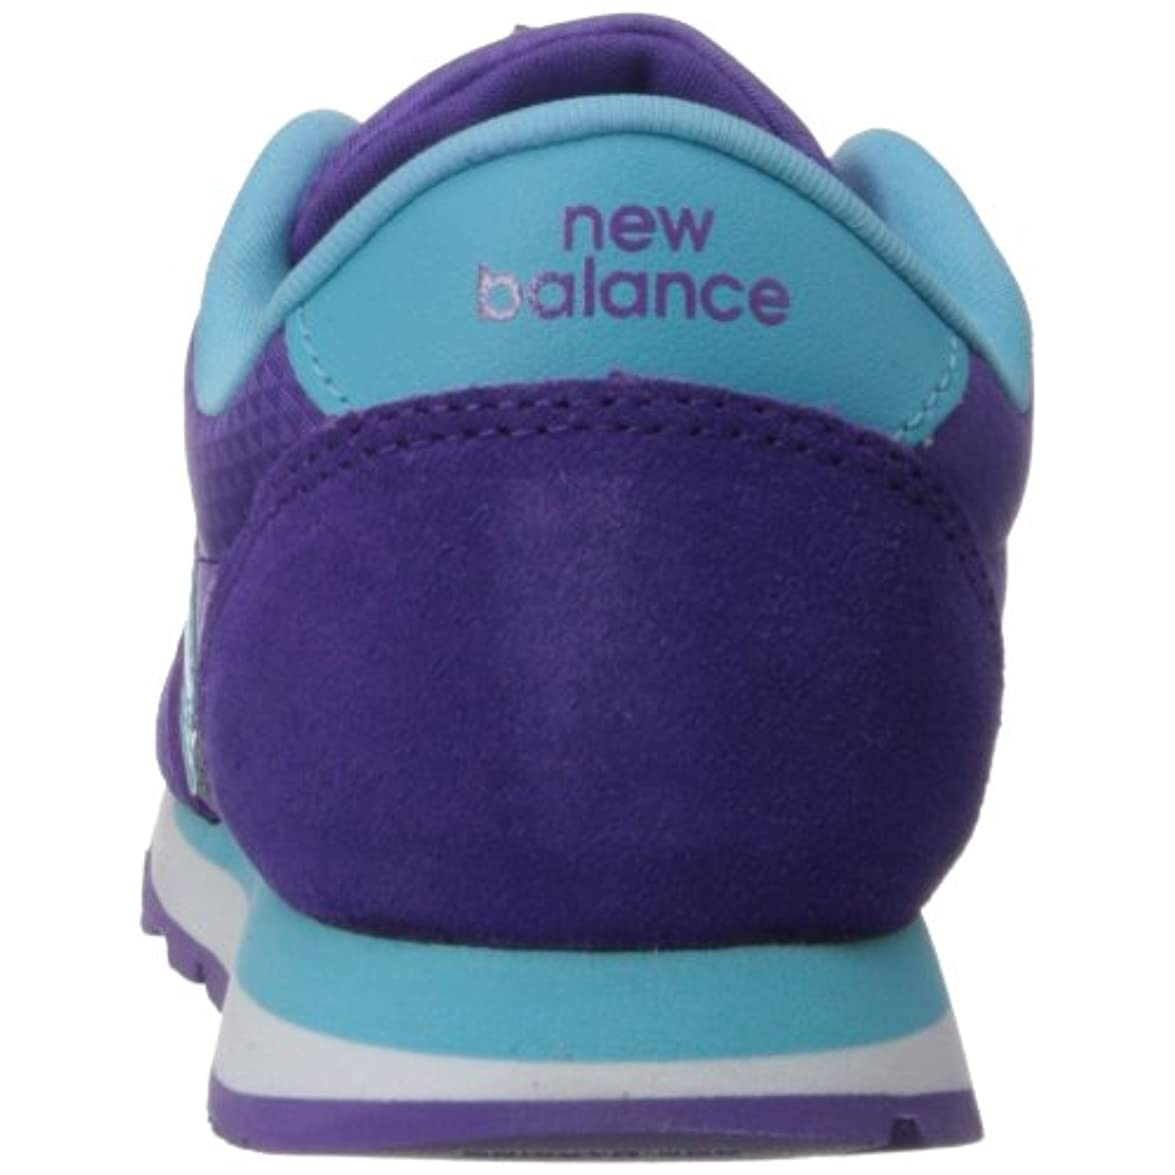 New Balance Sneaker Donna Viola Purple blue